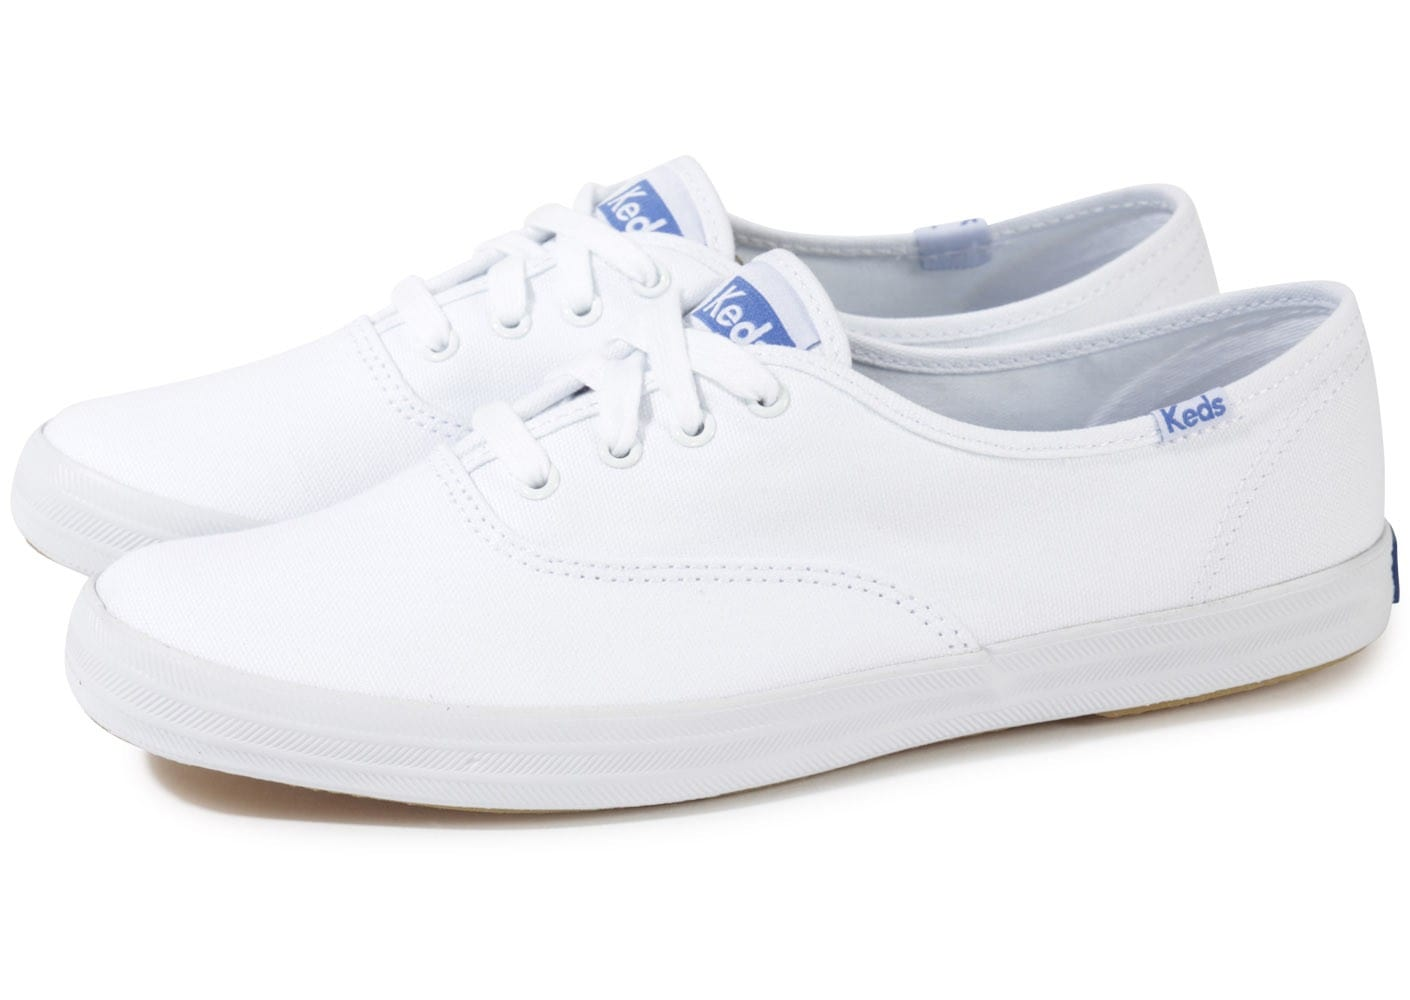 keds champion originals toile blanche chaussures chaussures chausport. Black Bedroom Furniture Sets. Home Design Ideas